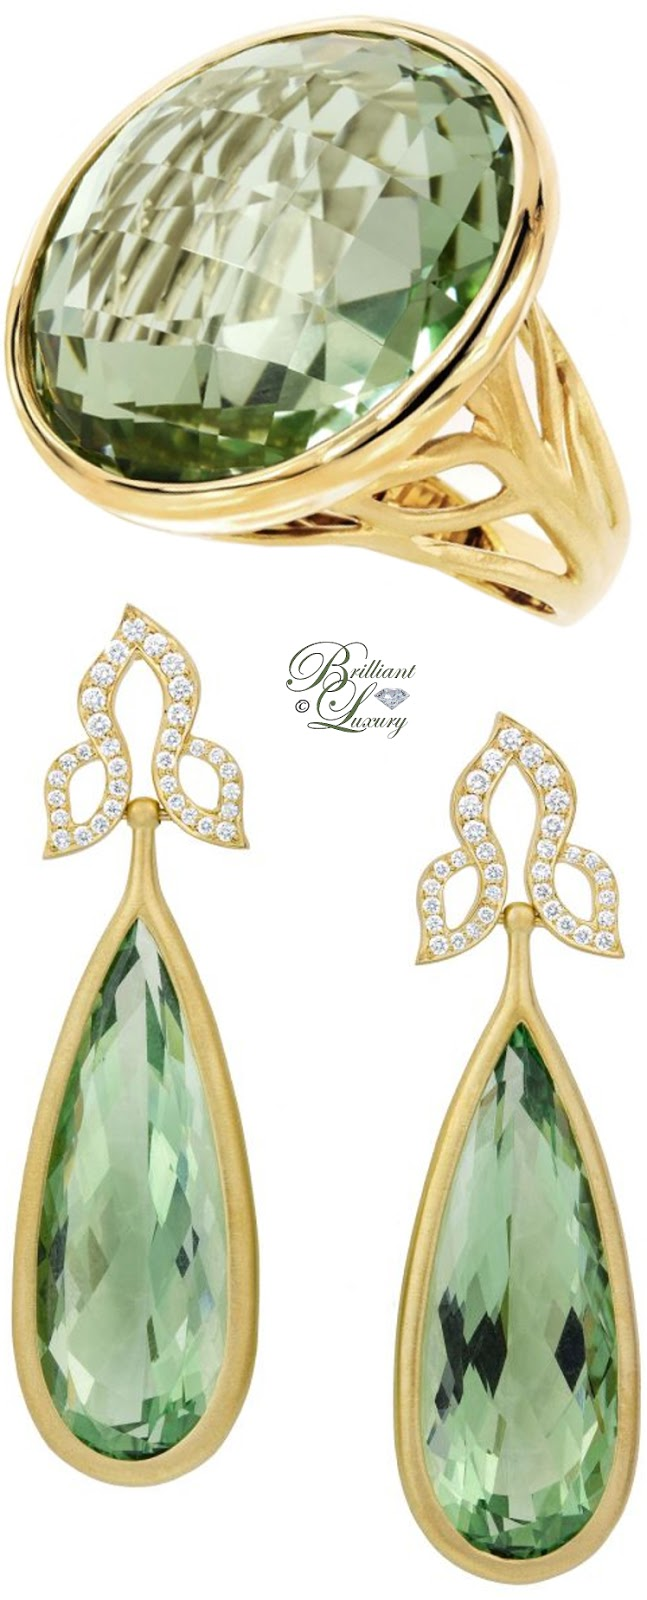 Carelle Green Quartz Ring & Earrings #jewelry #pantone #brilliantluxury